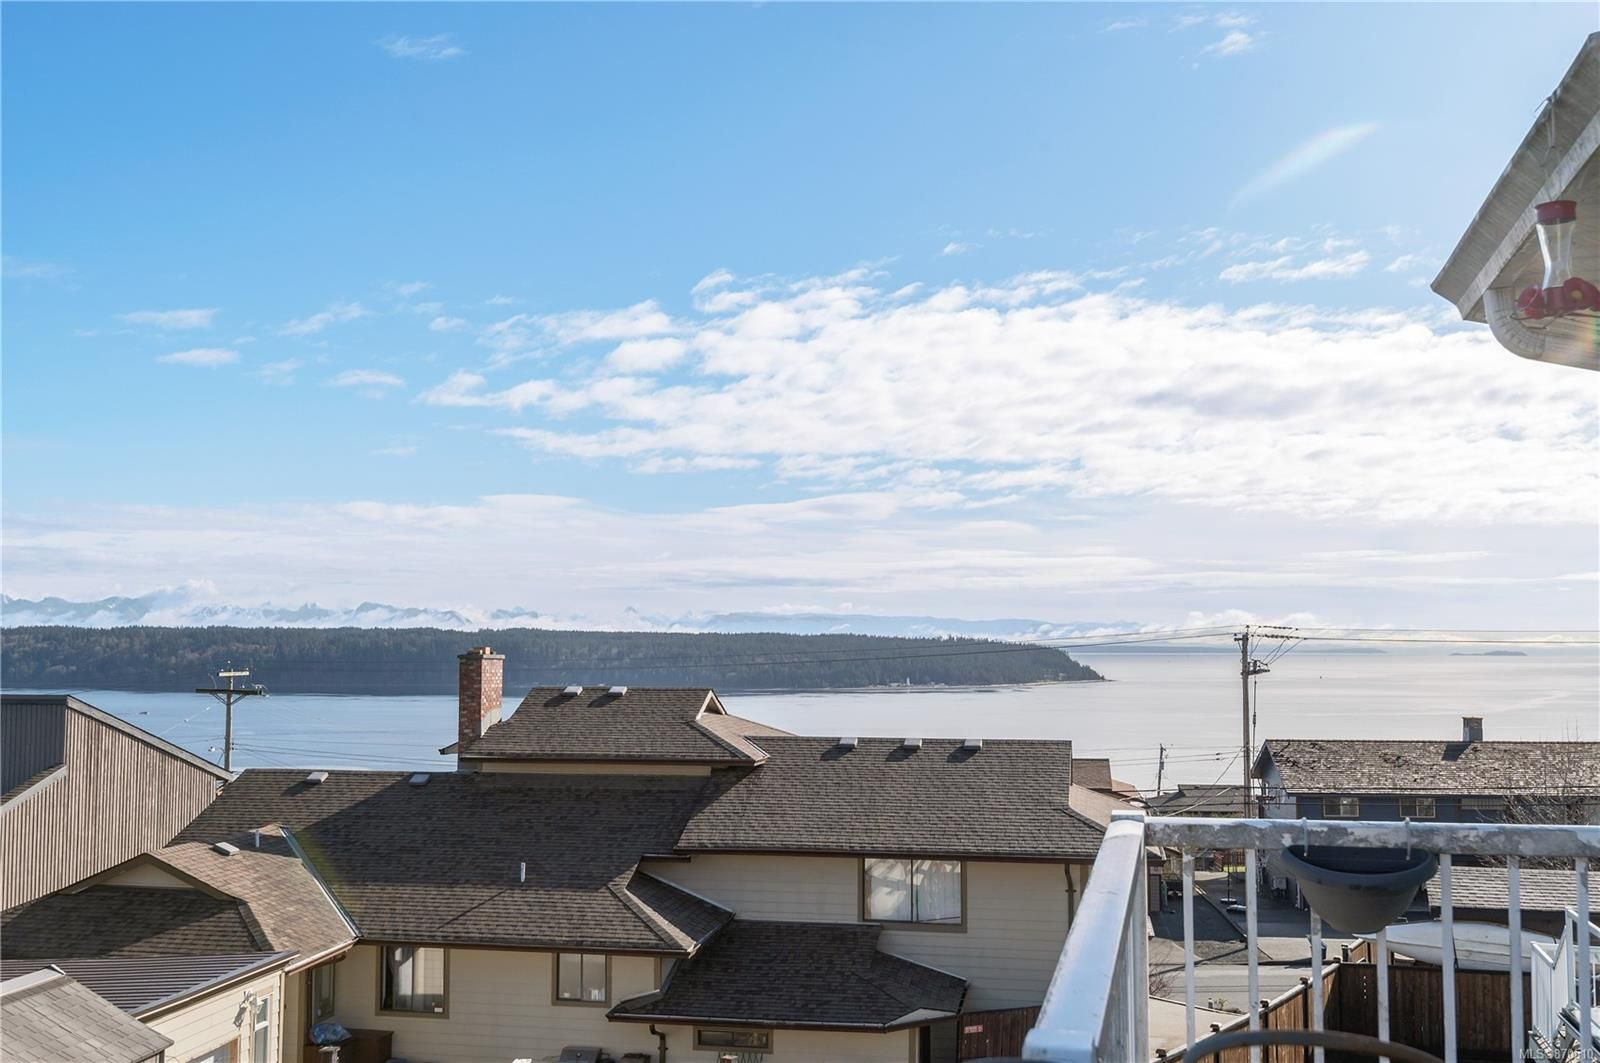 Main Photo: 581 S Alder St in : CR Campbell River Central House for sale (Campbell River)  : MLS®# 870510